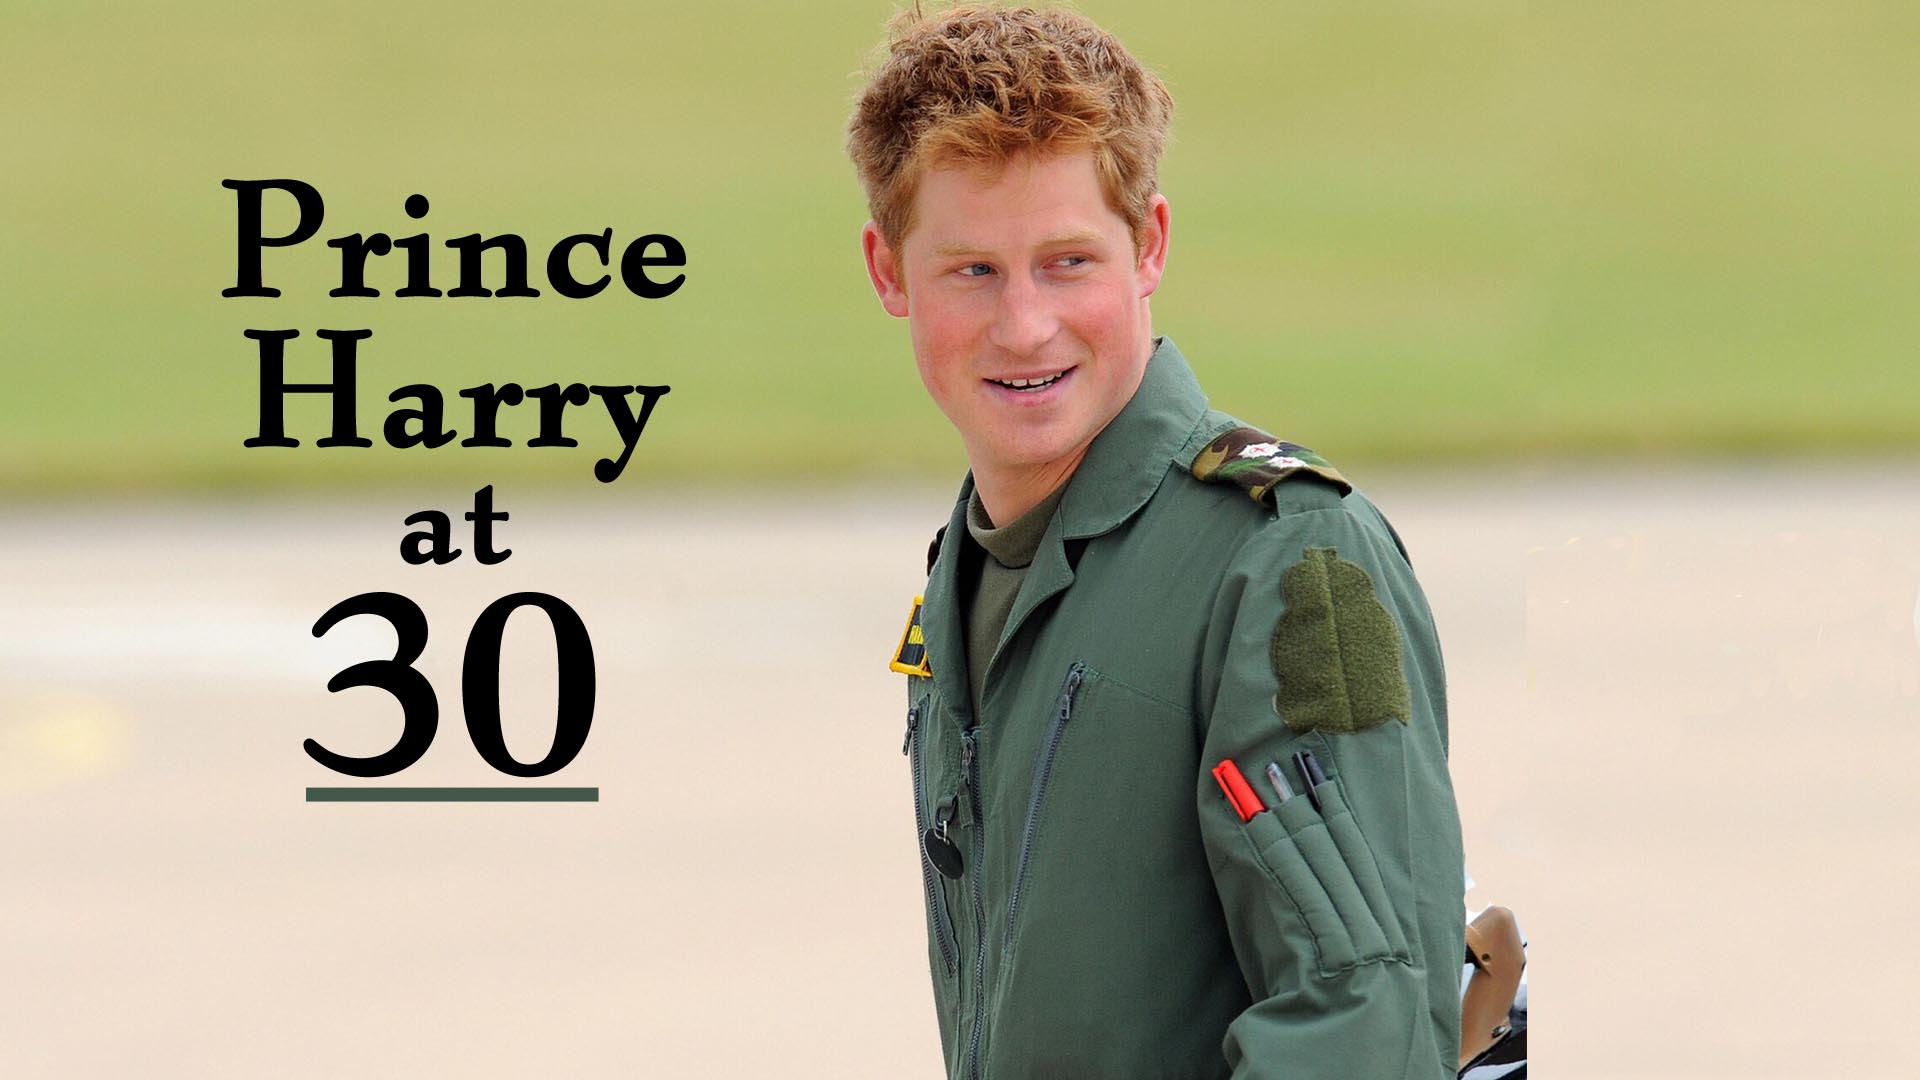 Prince Harry at 30  -